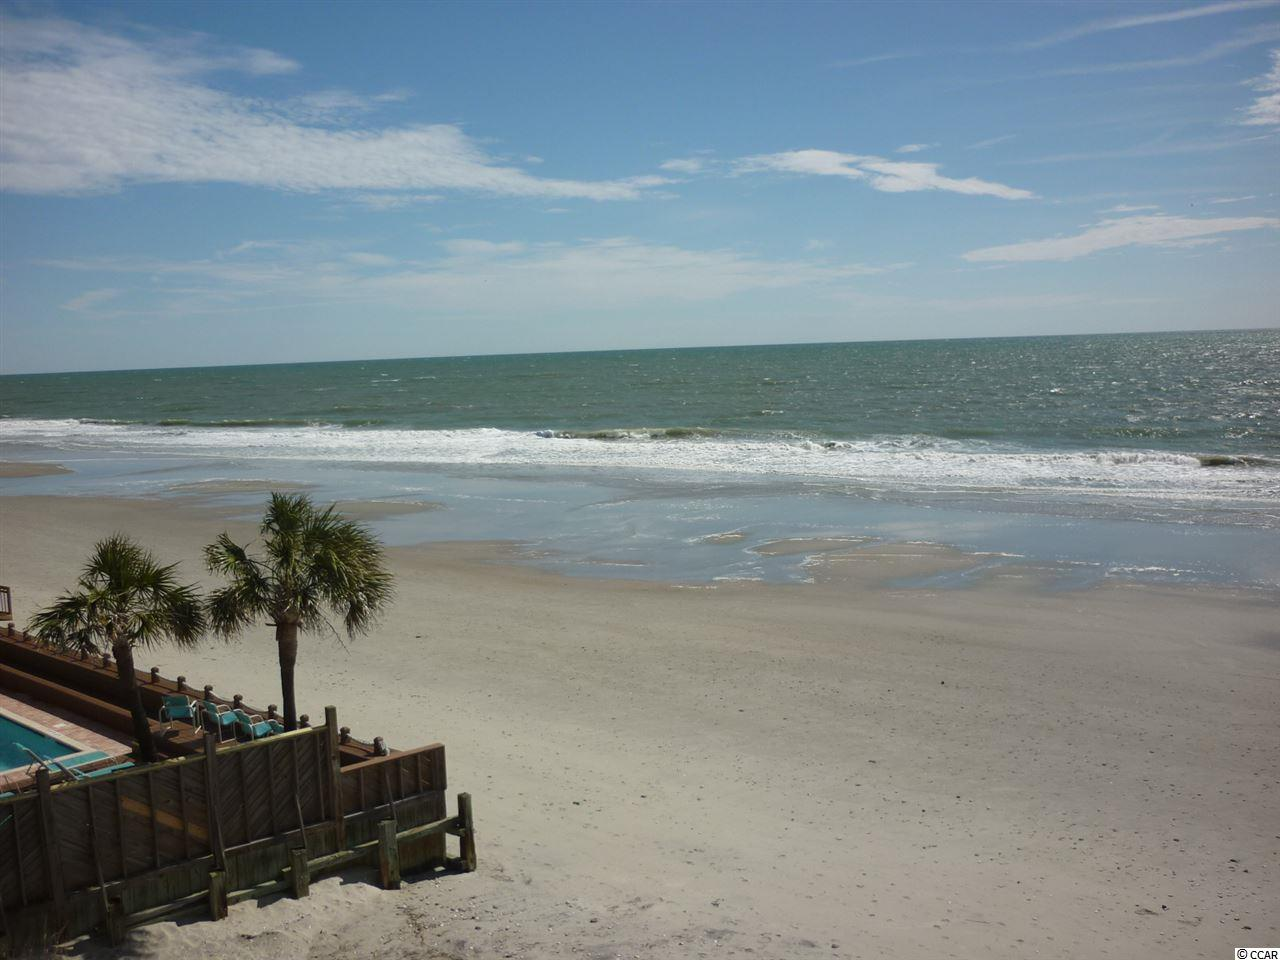 Condo For Sale At Seasider In Garden City Beach South Carolina Unit 201 Listing Mls Number 1614757